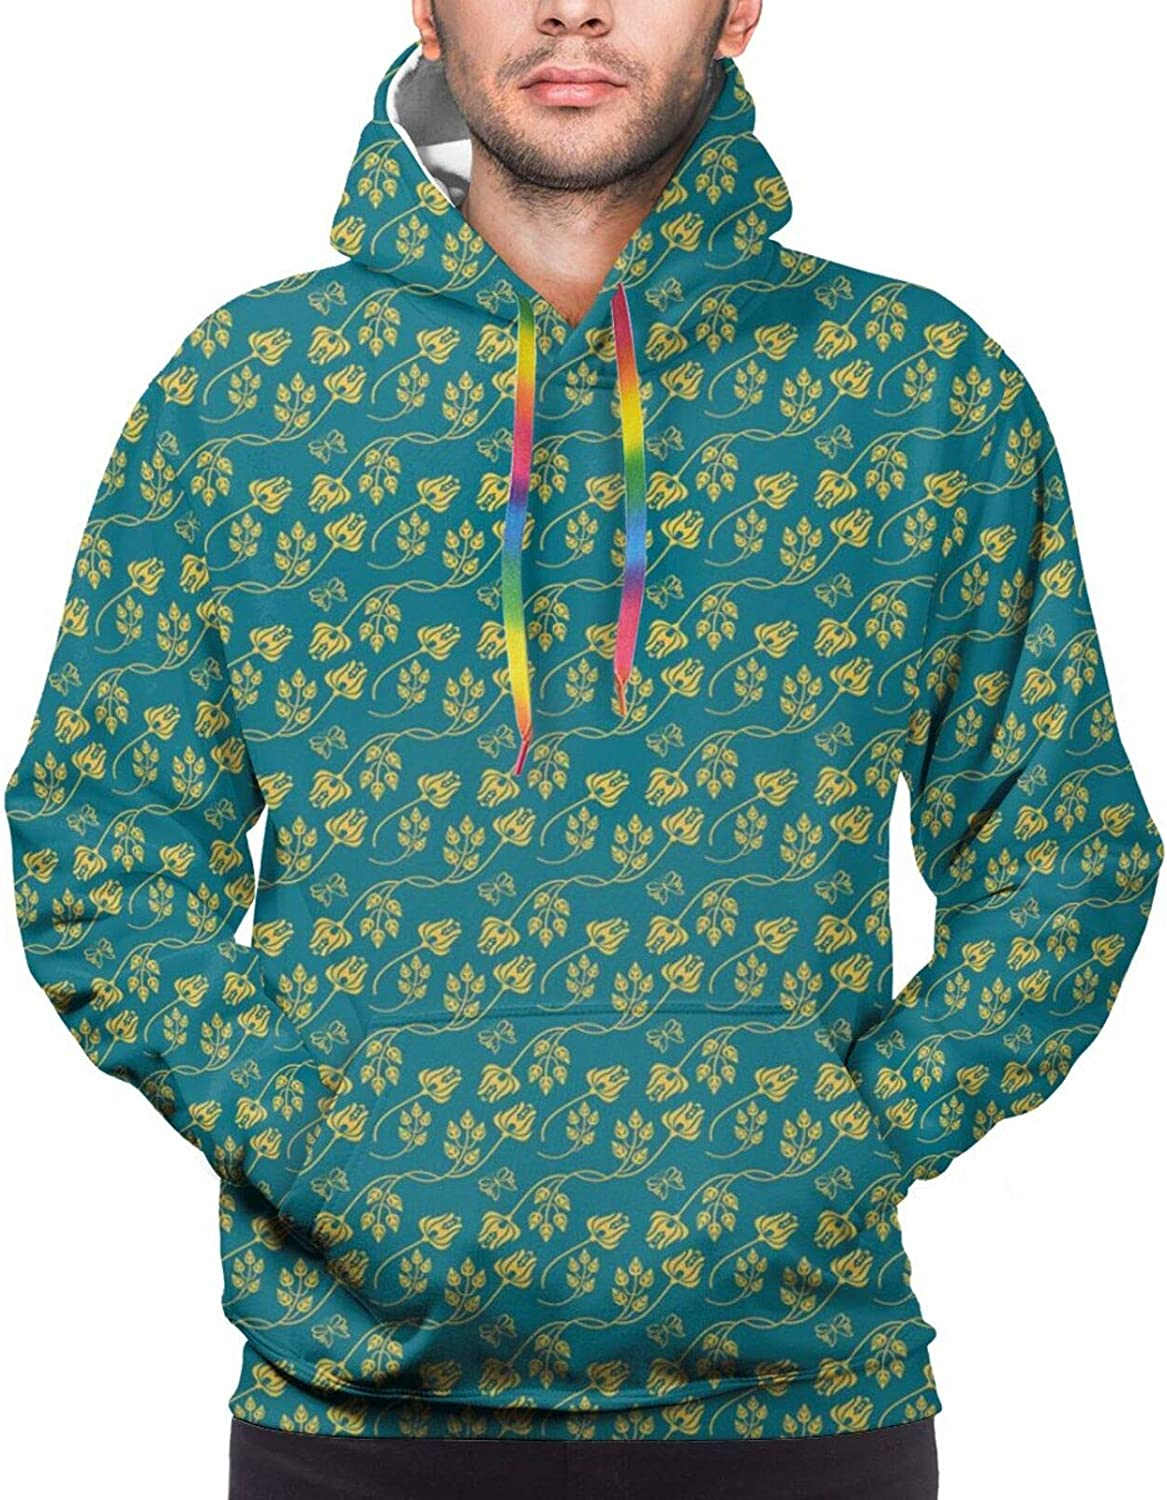 Men's Hoodies Sweatshirts,Oriental Inspired Damask with Abstract Tulip Petals and Leaves